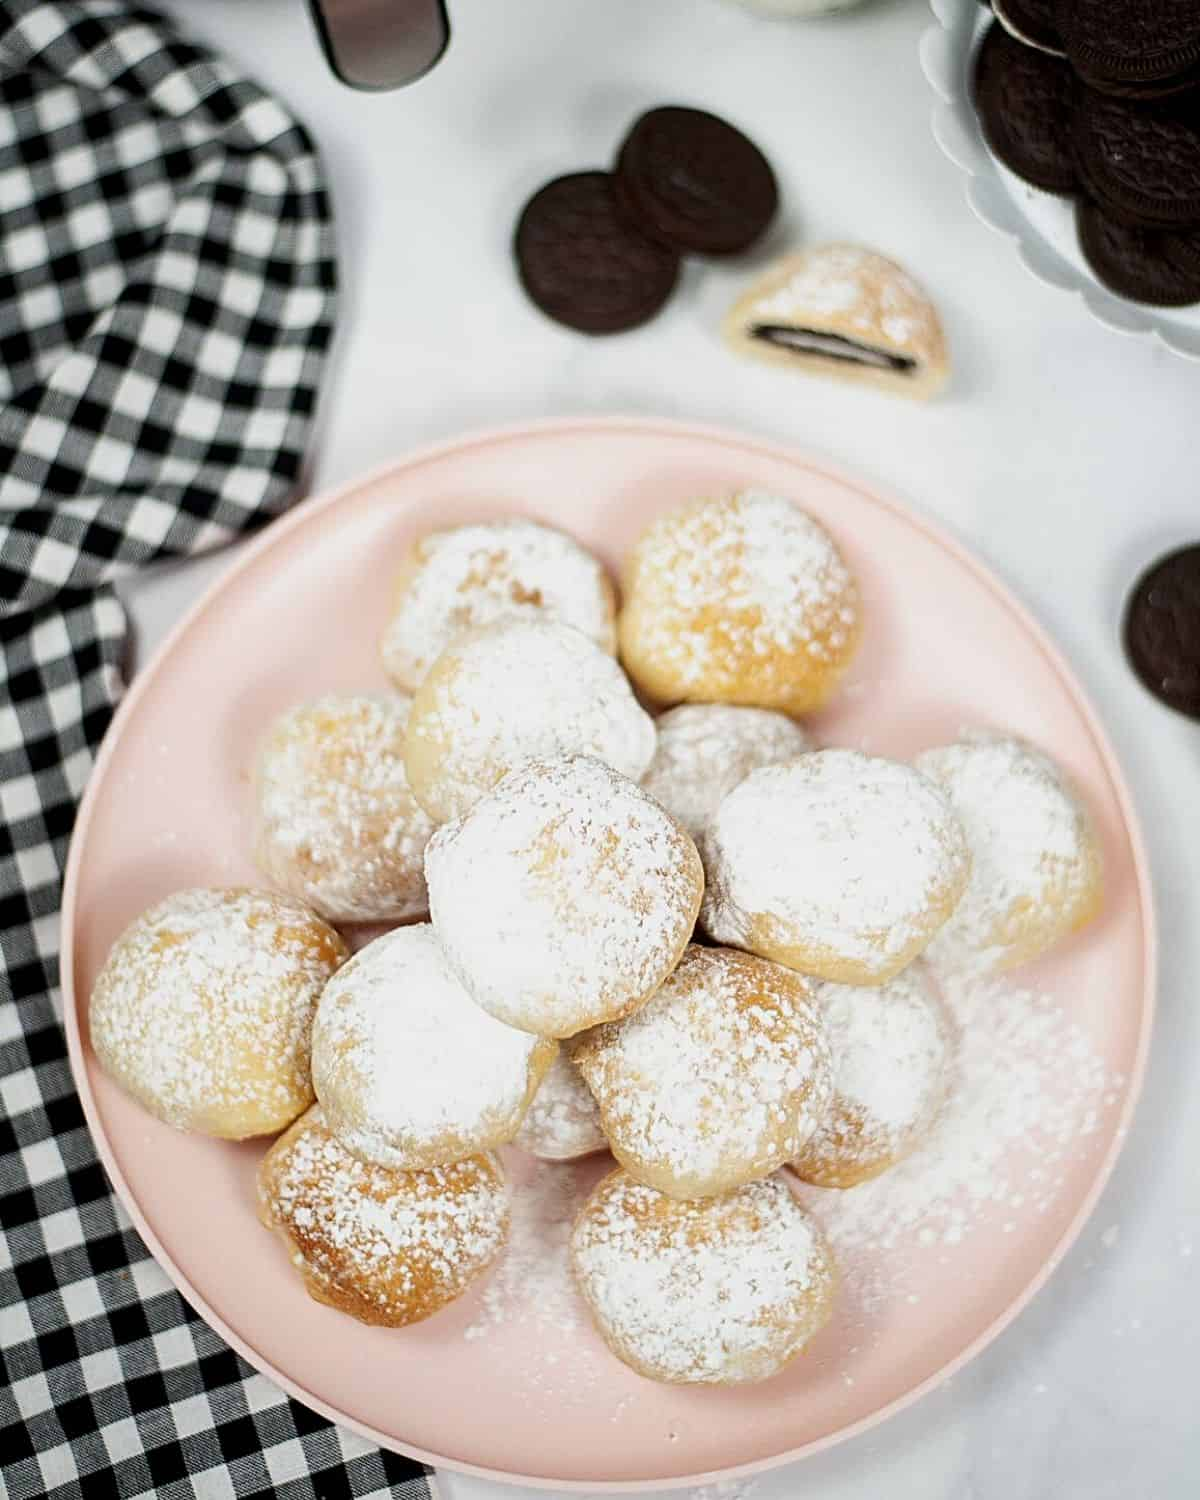 An overhead view of fried Oreos on a pink plate.